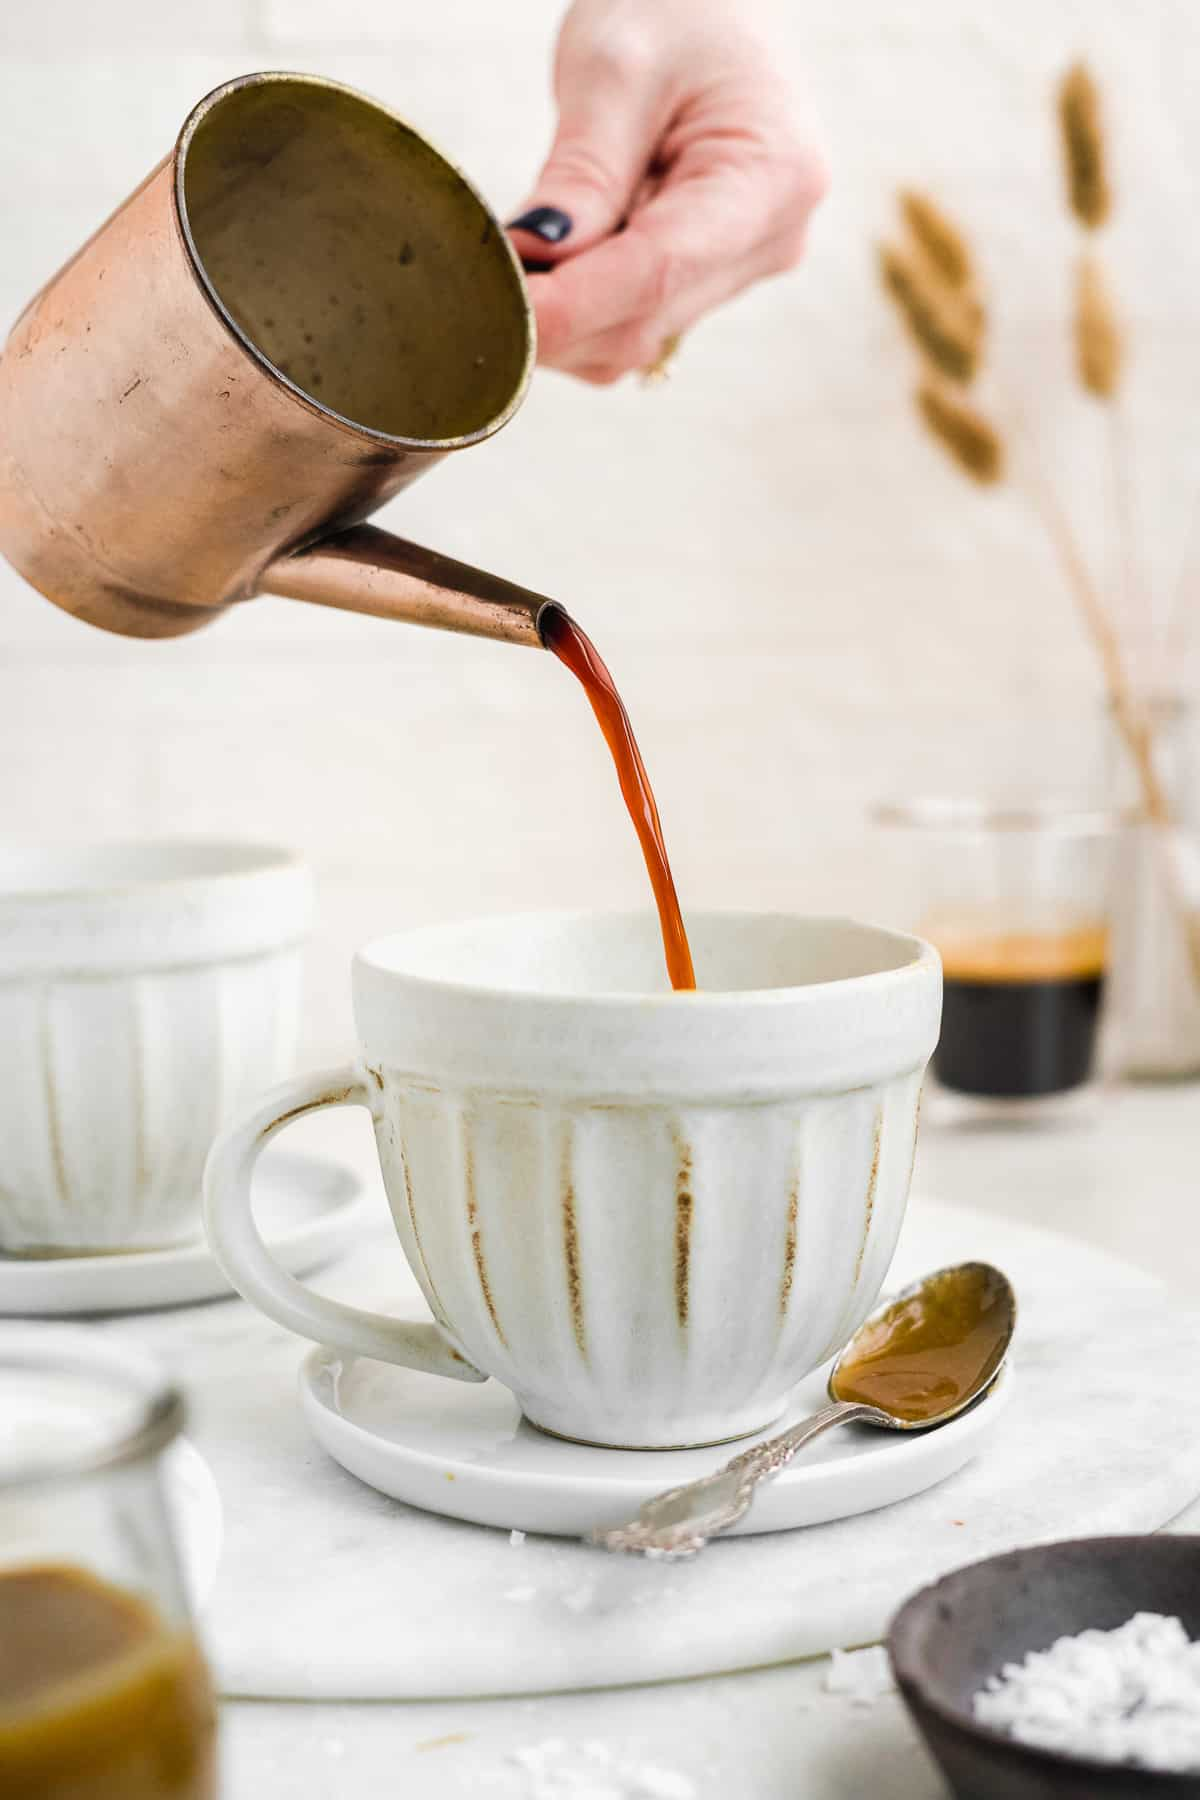 Hand pouring espresso into a coffee mug on a white surface.